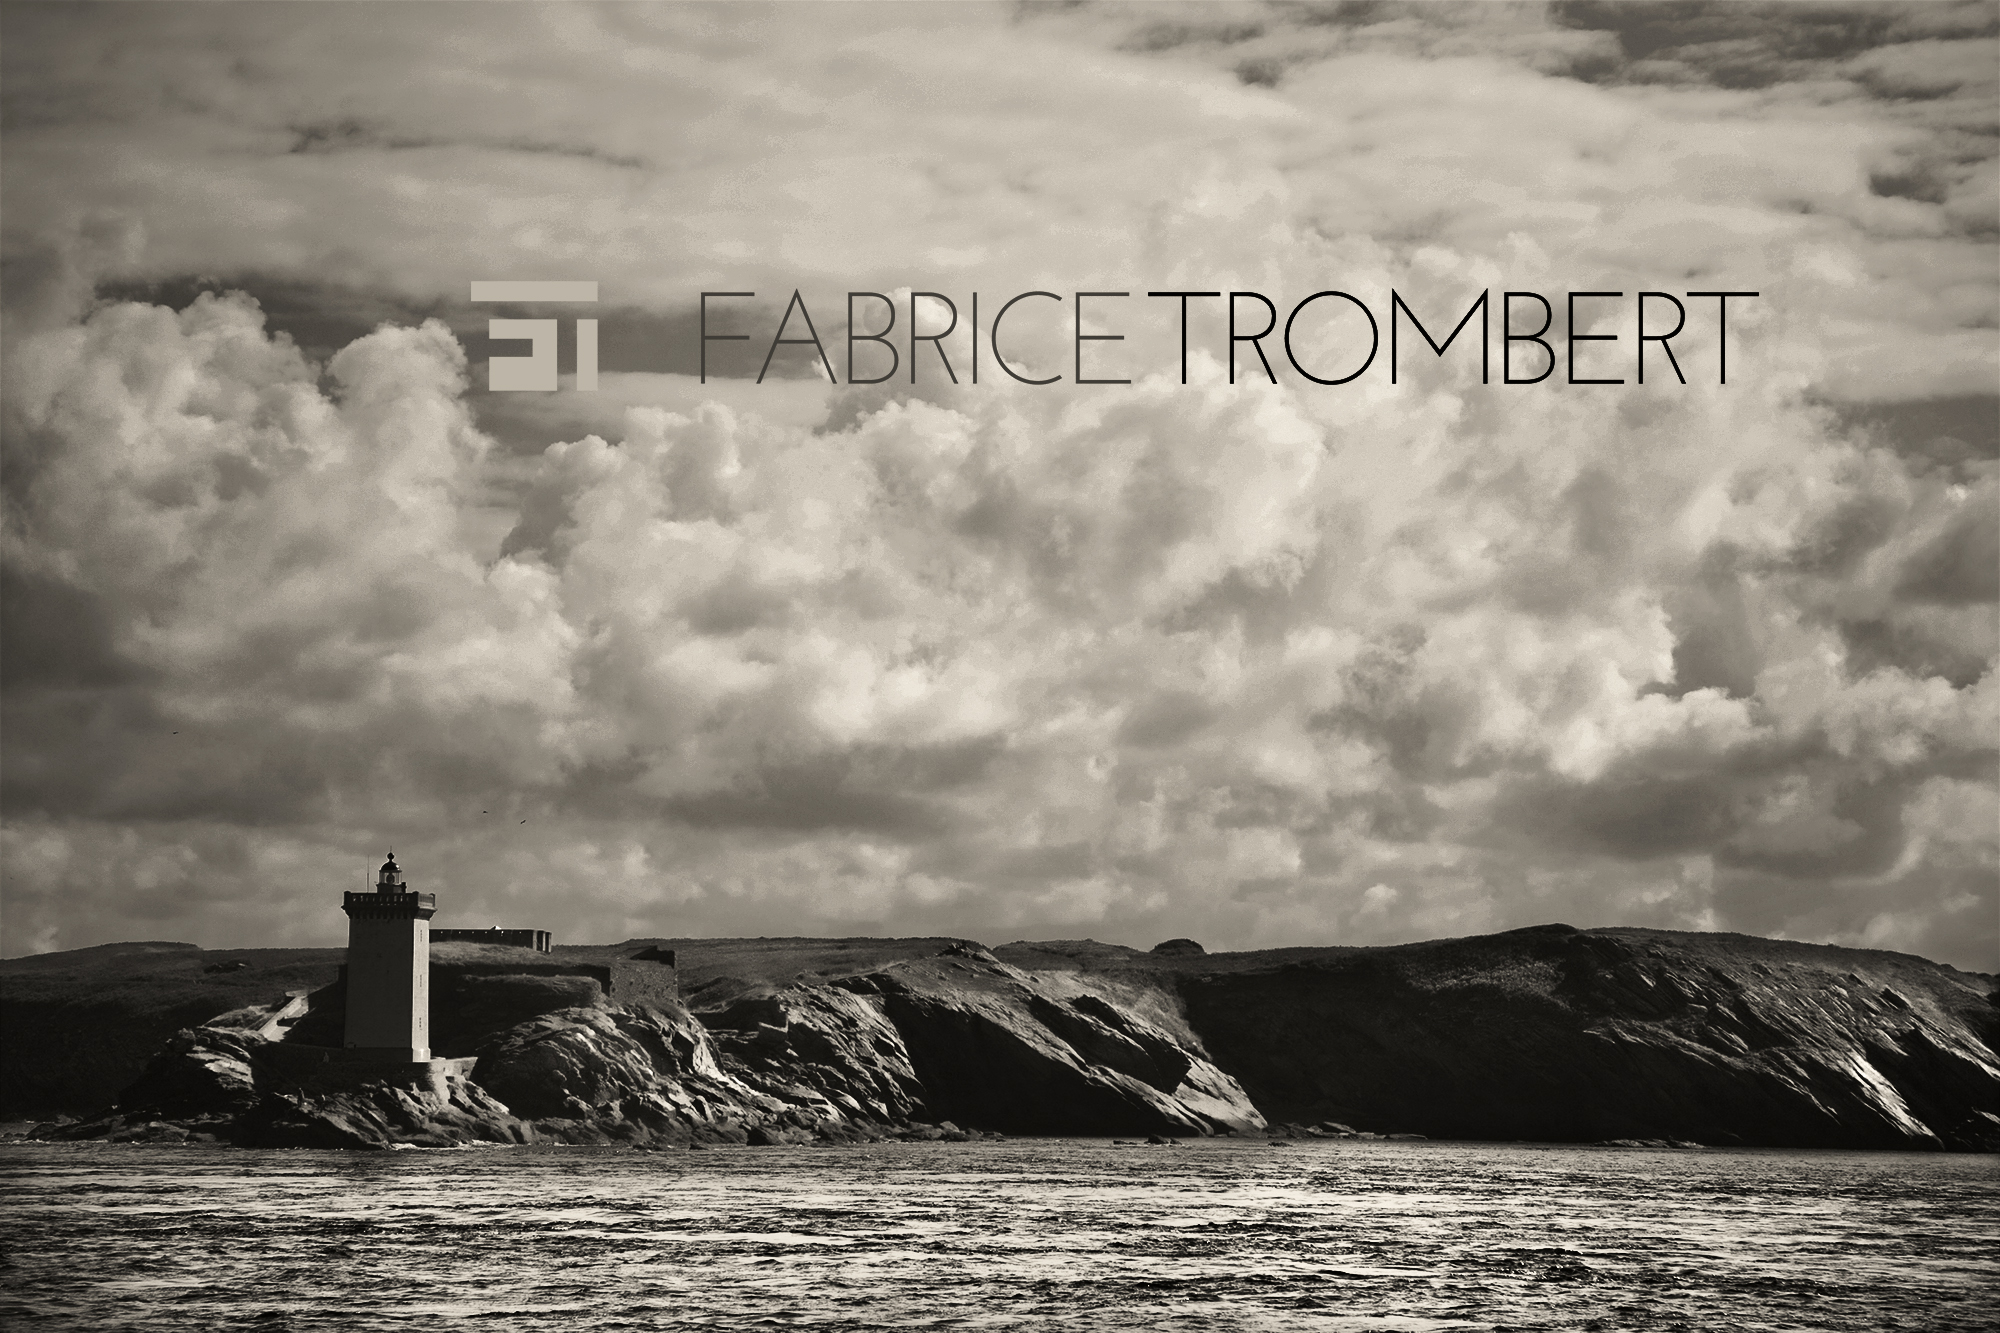 Bretagne France - 17w x 11.3h Archival Ink jet Print on Hahnemühle Fine Art Paper